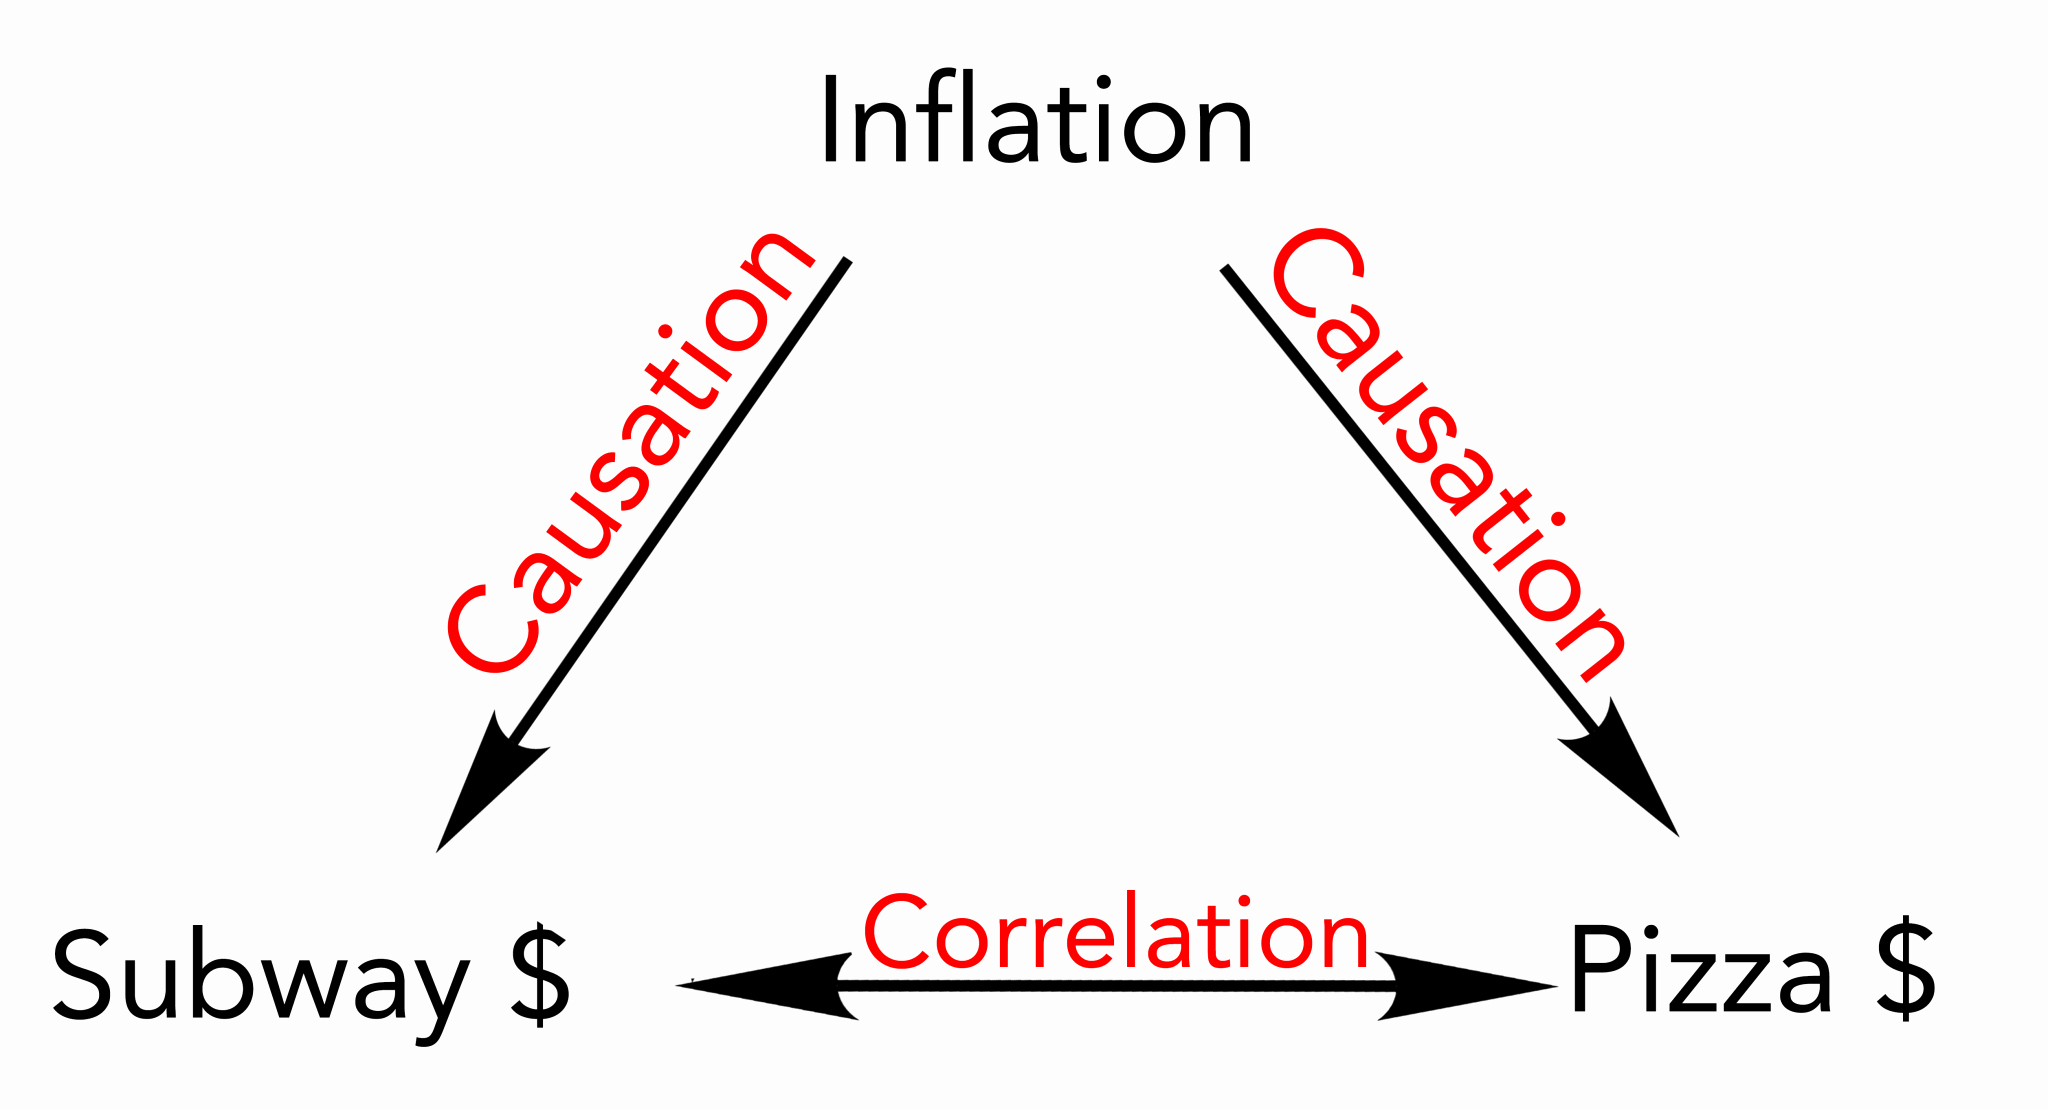 Correlation Vs Causation Worksheet Awesome Correlation Vs Causation Understand the Difference for